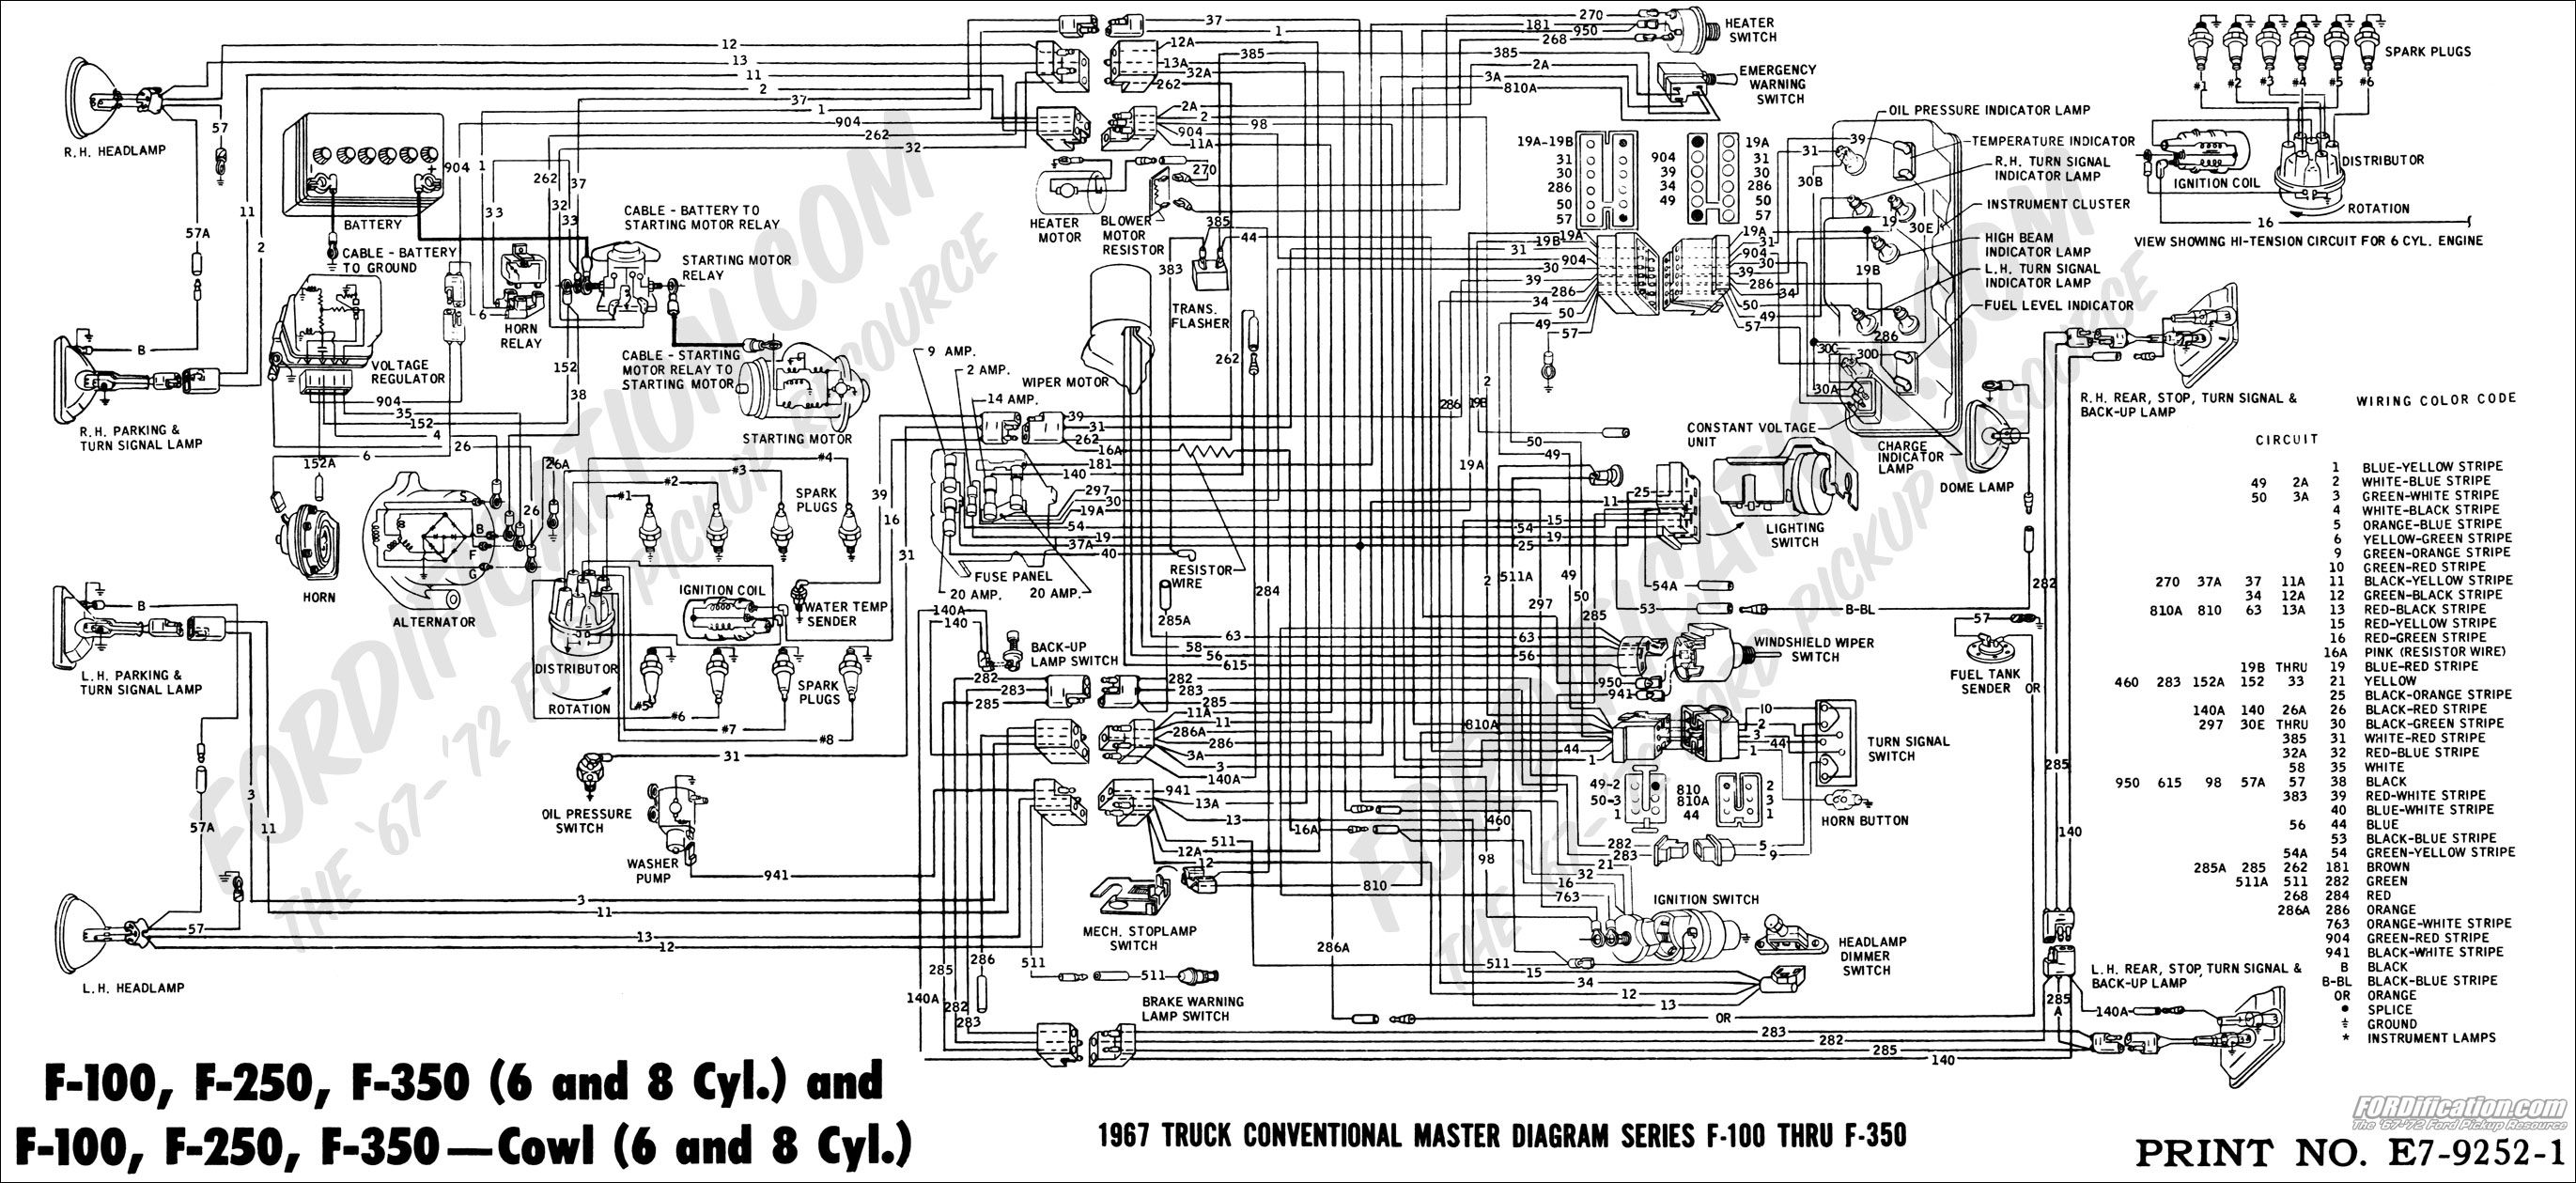 8e608320d8e6c71ff5bbdb2efdd7ada1 ford truck technical drawings and schematics section h wiring Ford E 350 Wiring Diagrams at crackthecode.co